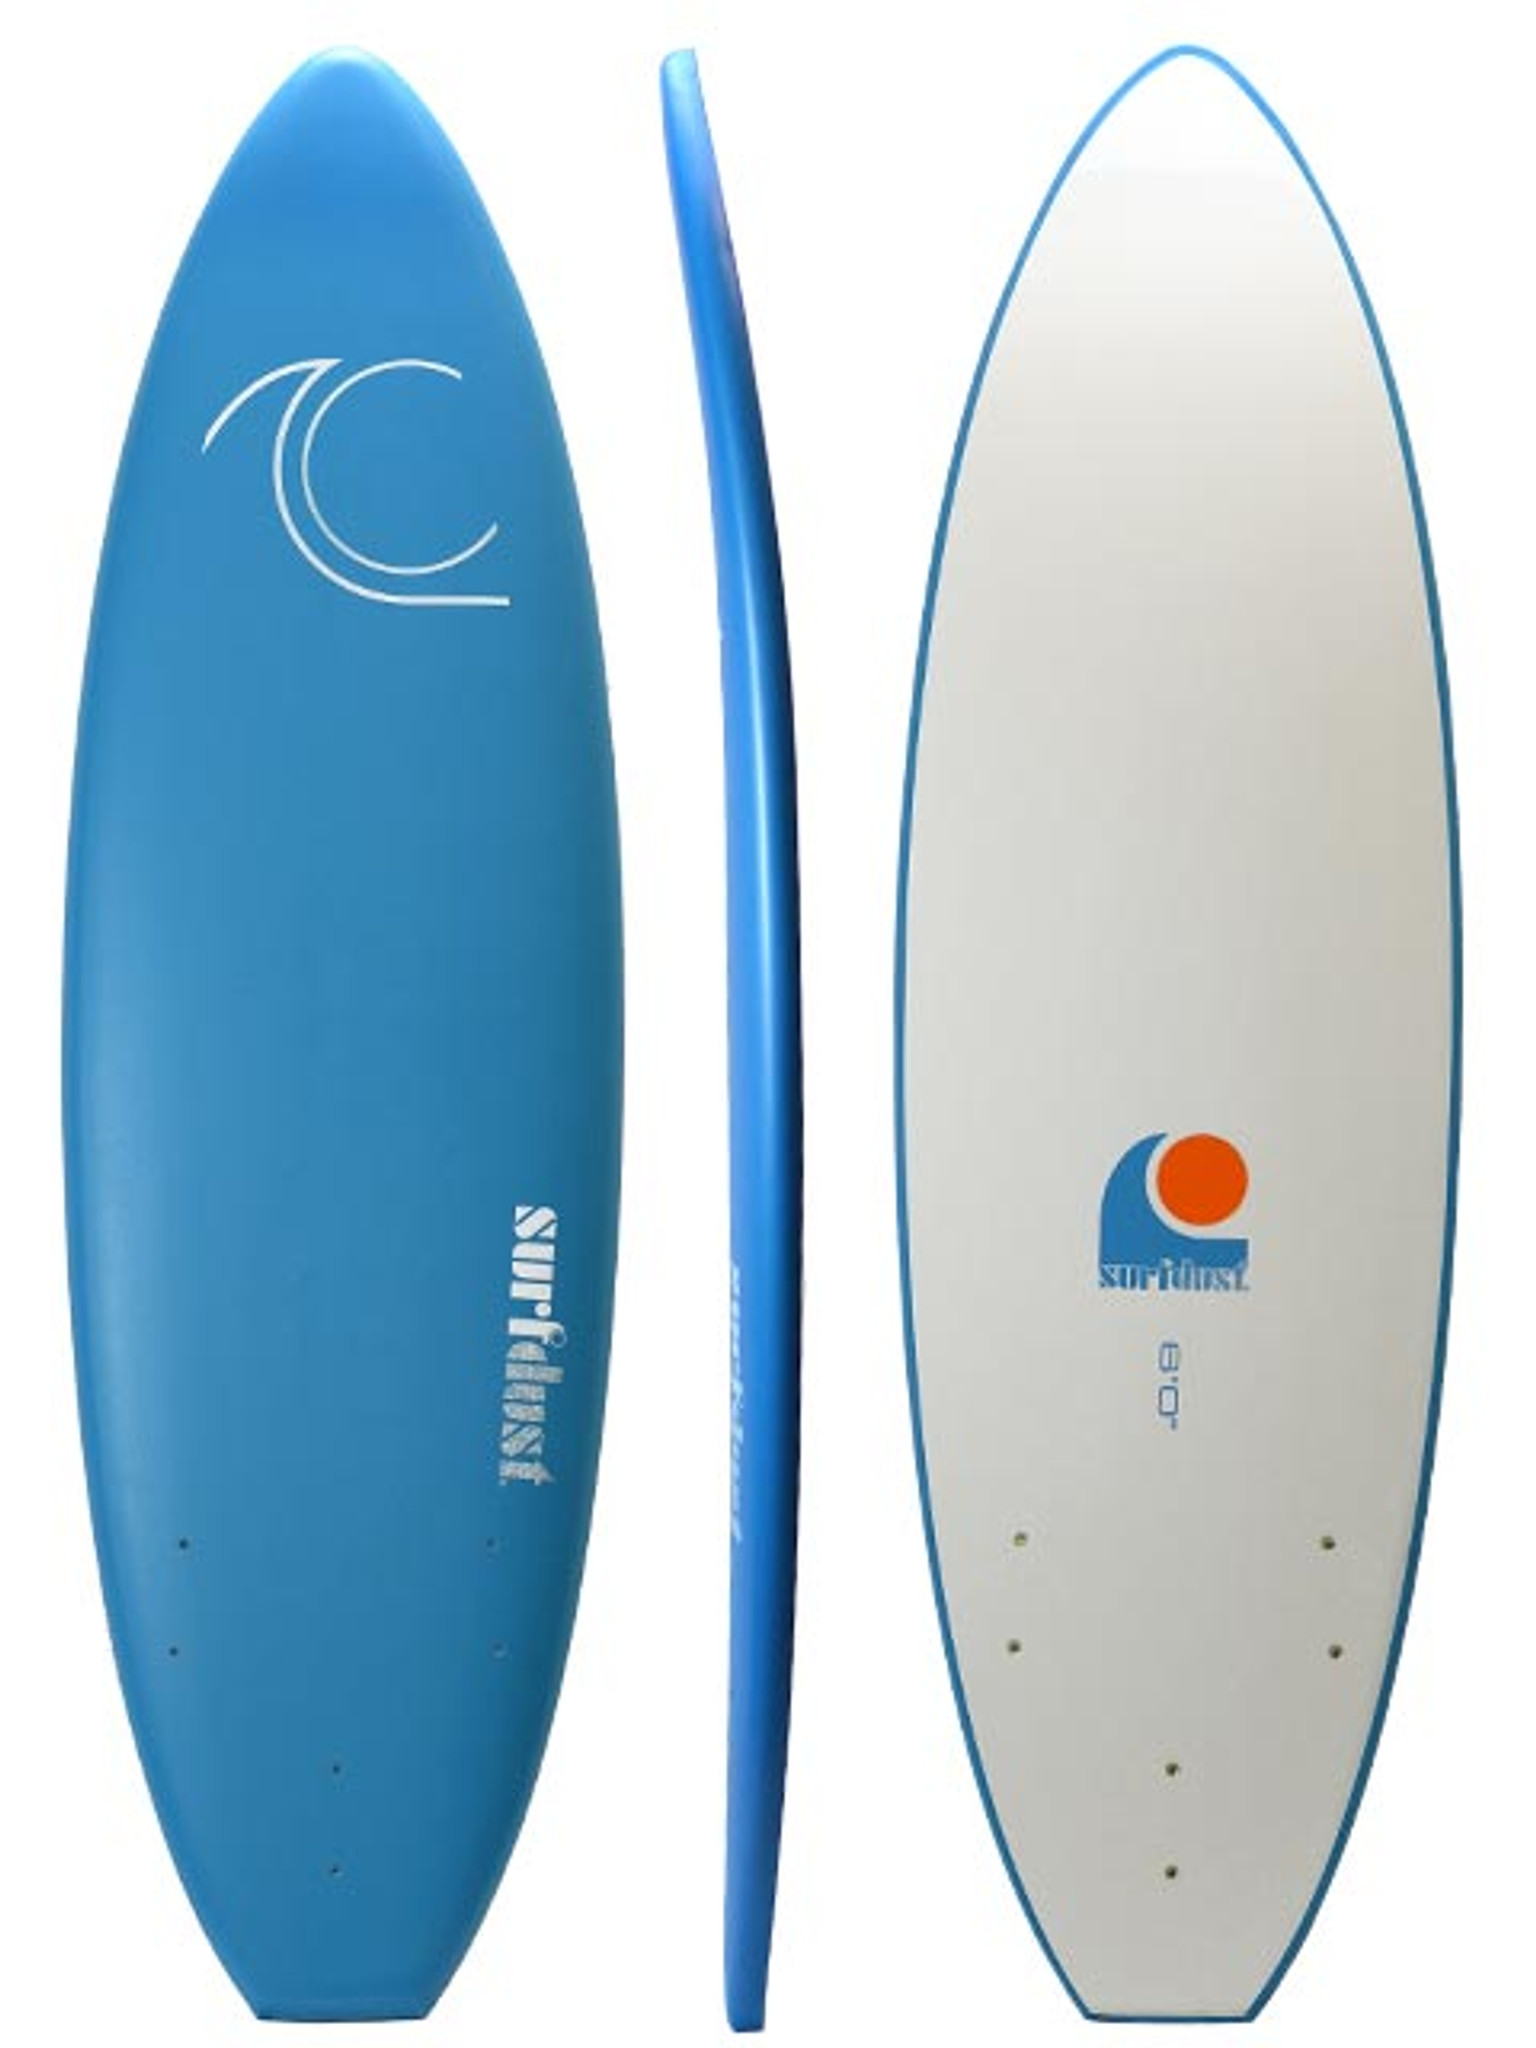 SURFDUST Blue